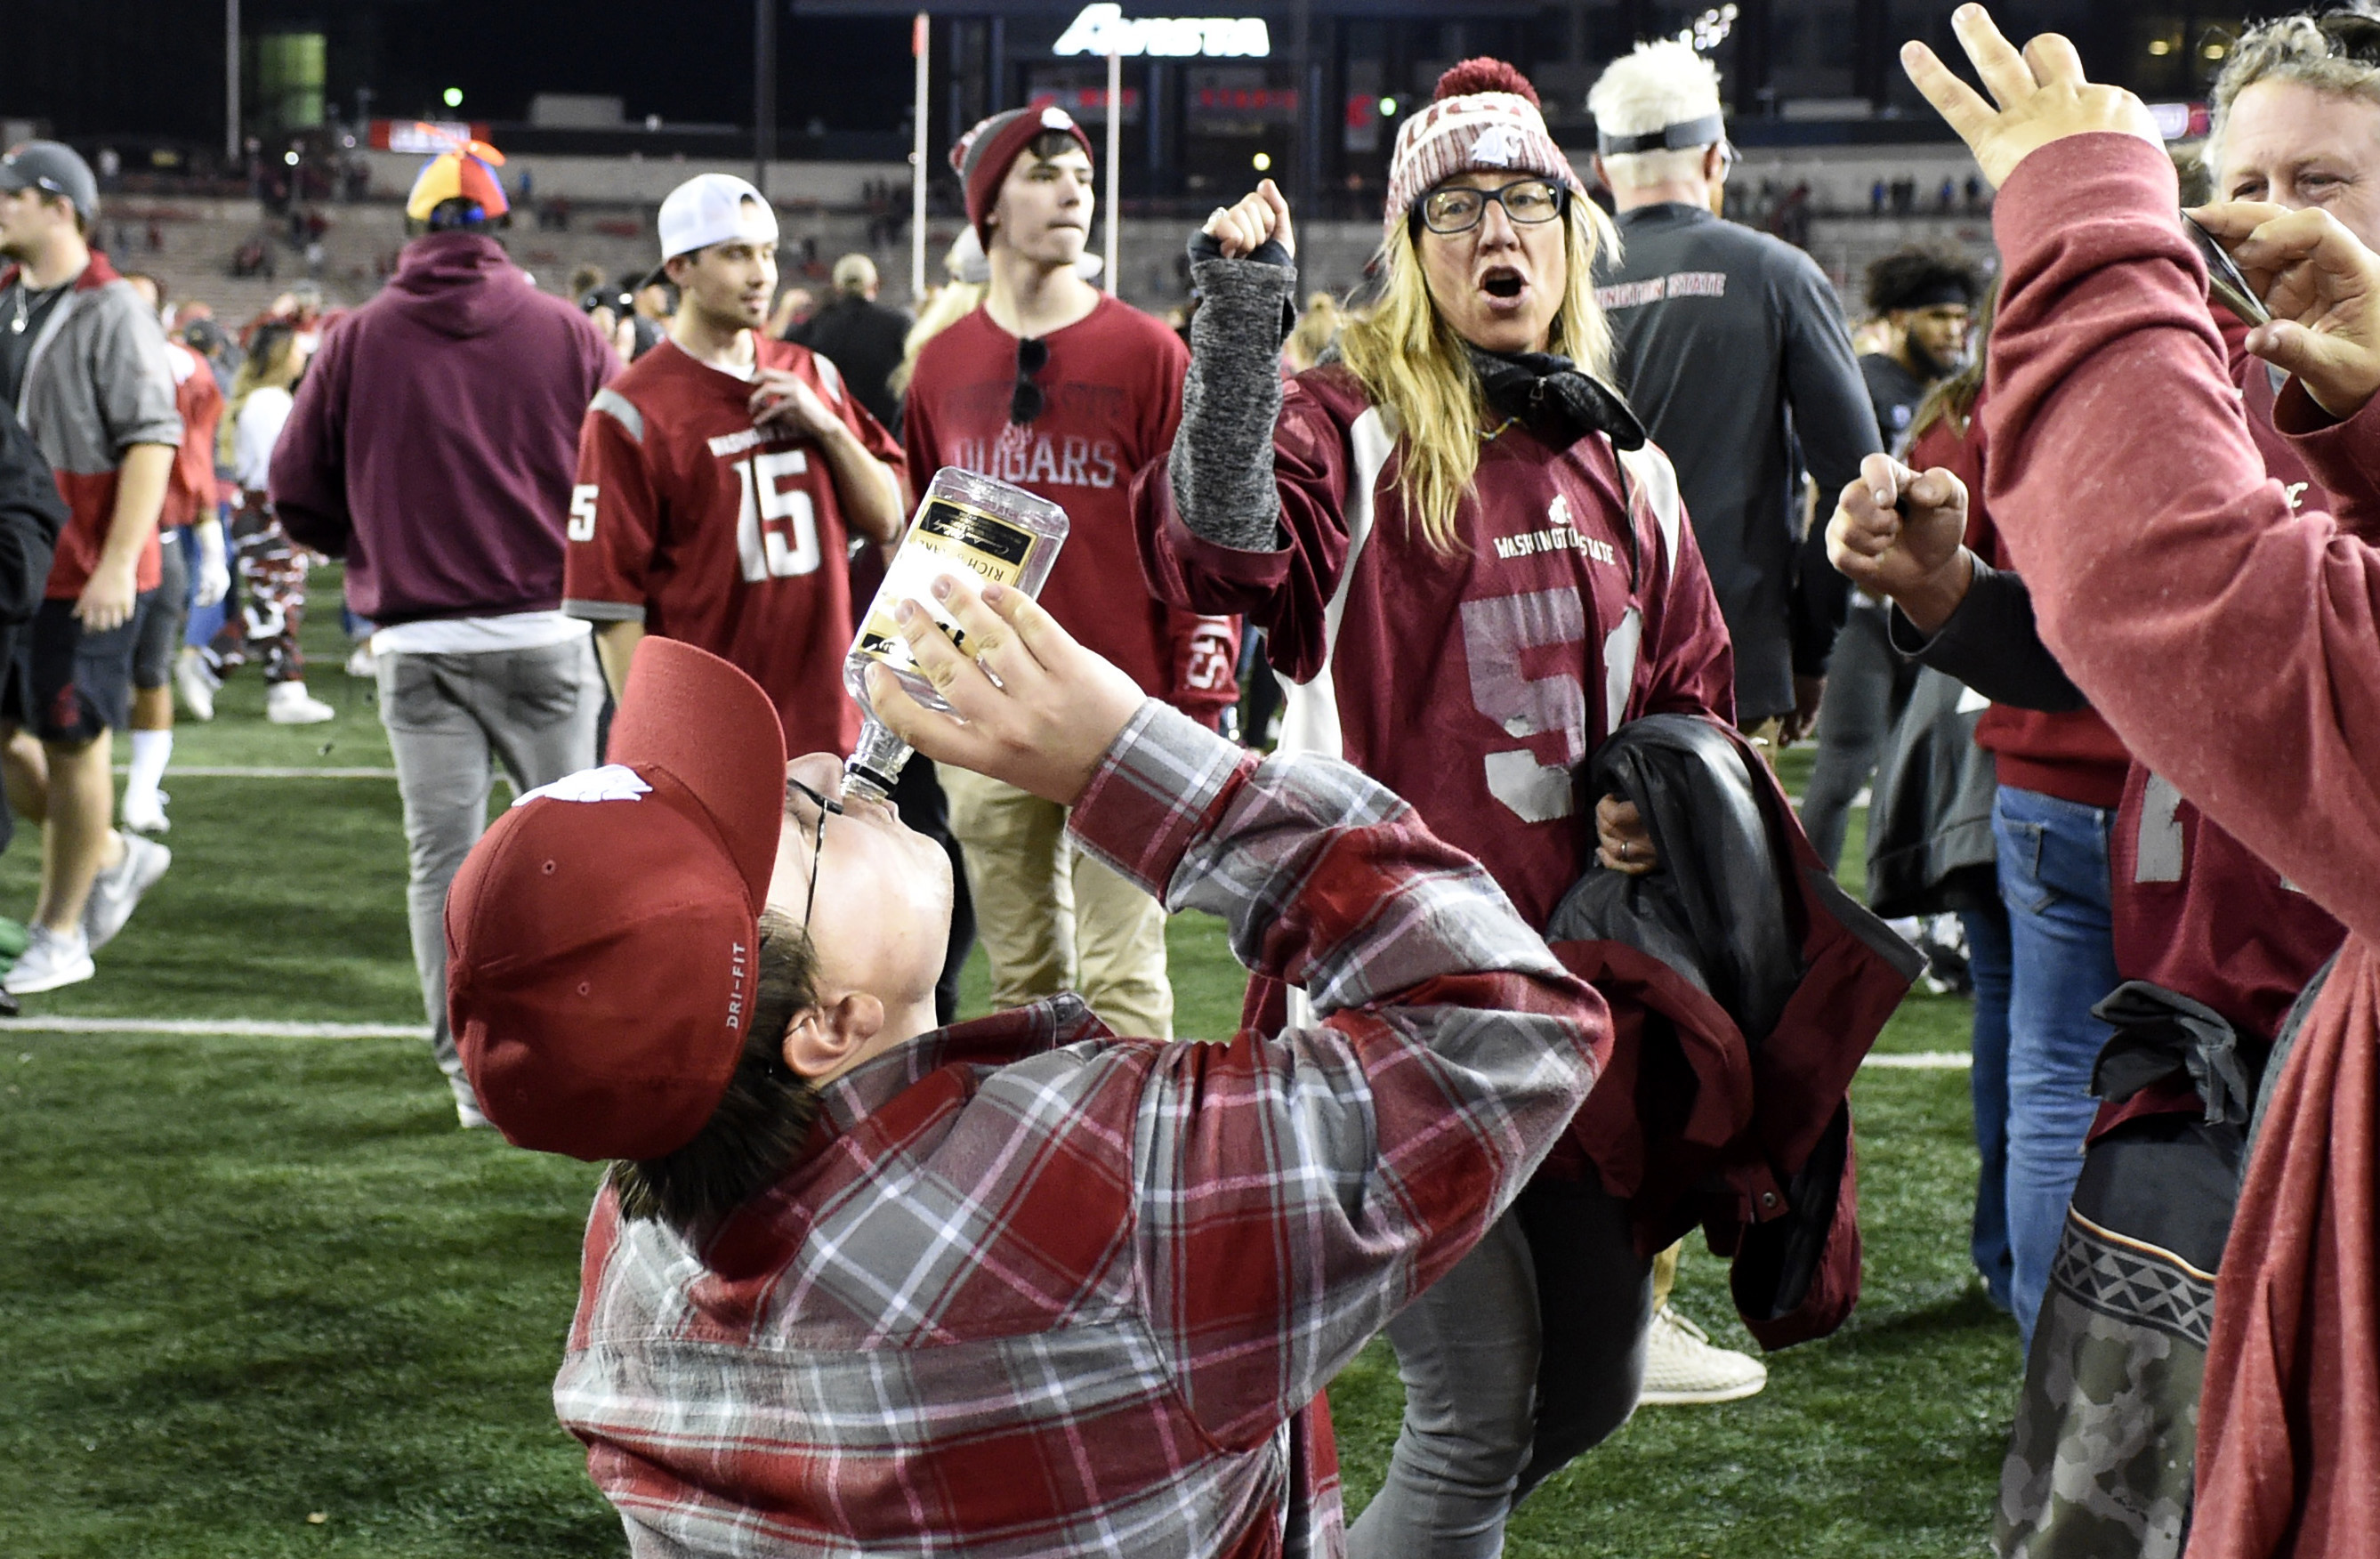 Wazzu and Purdue are the world's greatest football teams, except for UCF